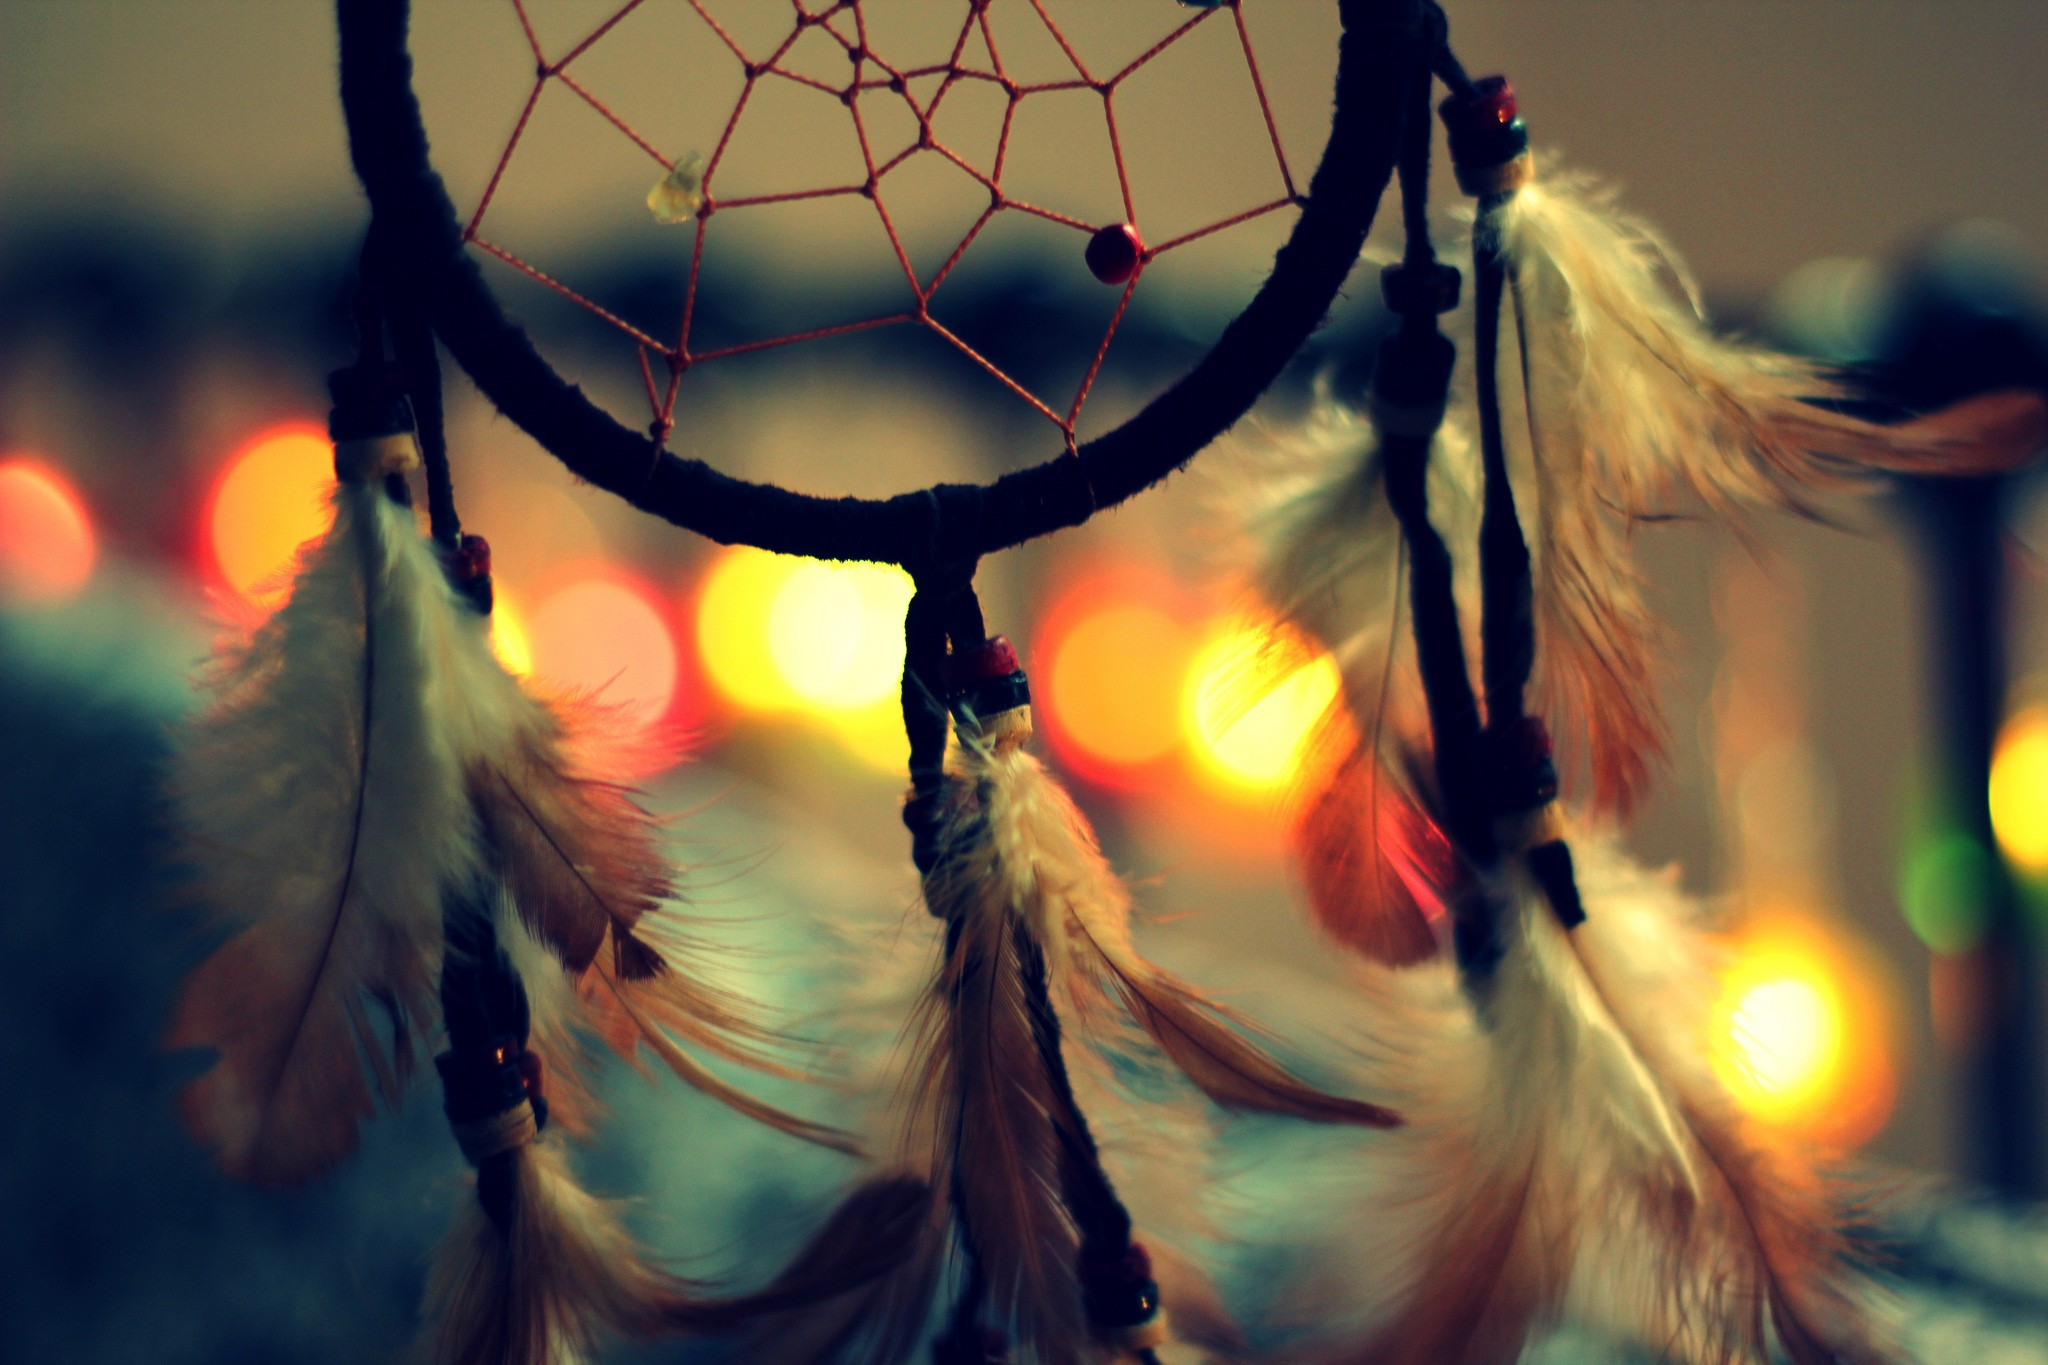 General 2048x1365 dreamcatchers macro lights